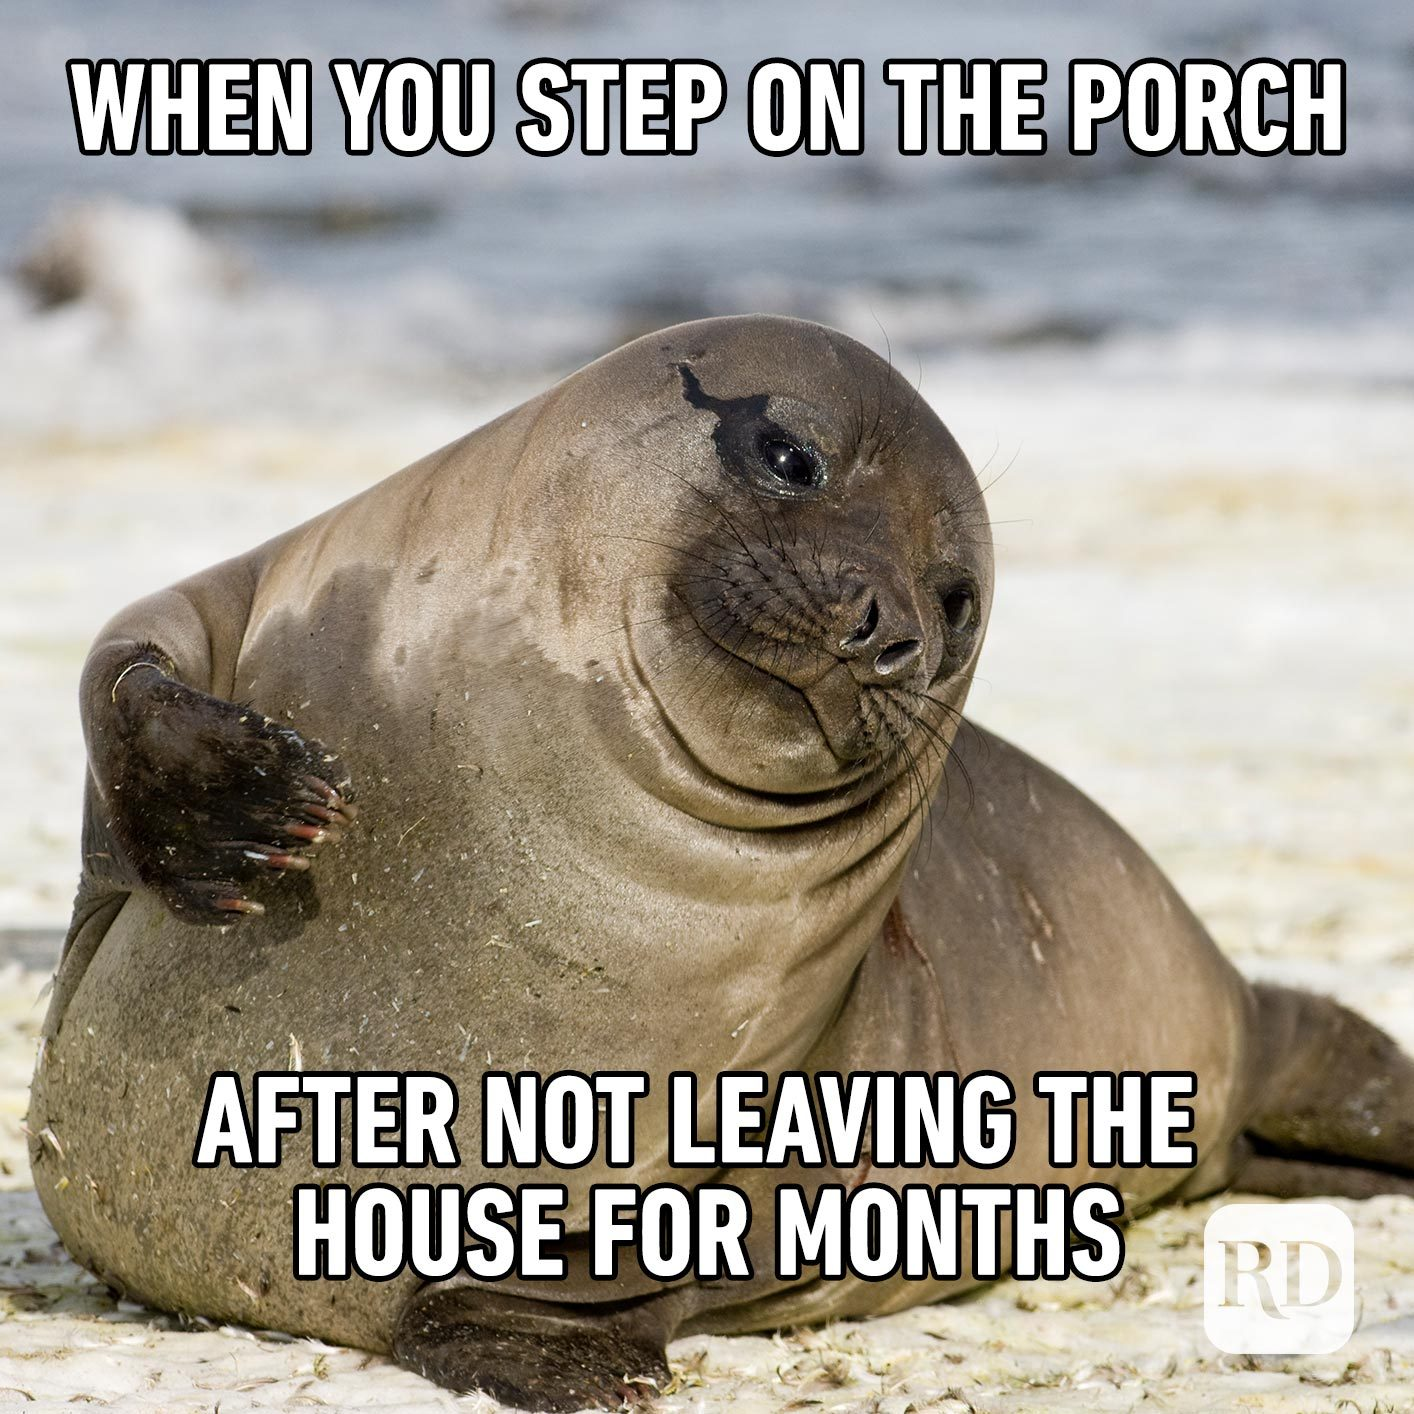 Seal basking in sun. Meme text: When you step on the porch after not leaving the house for months